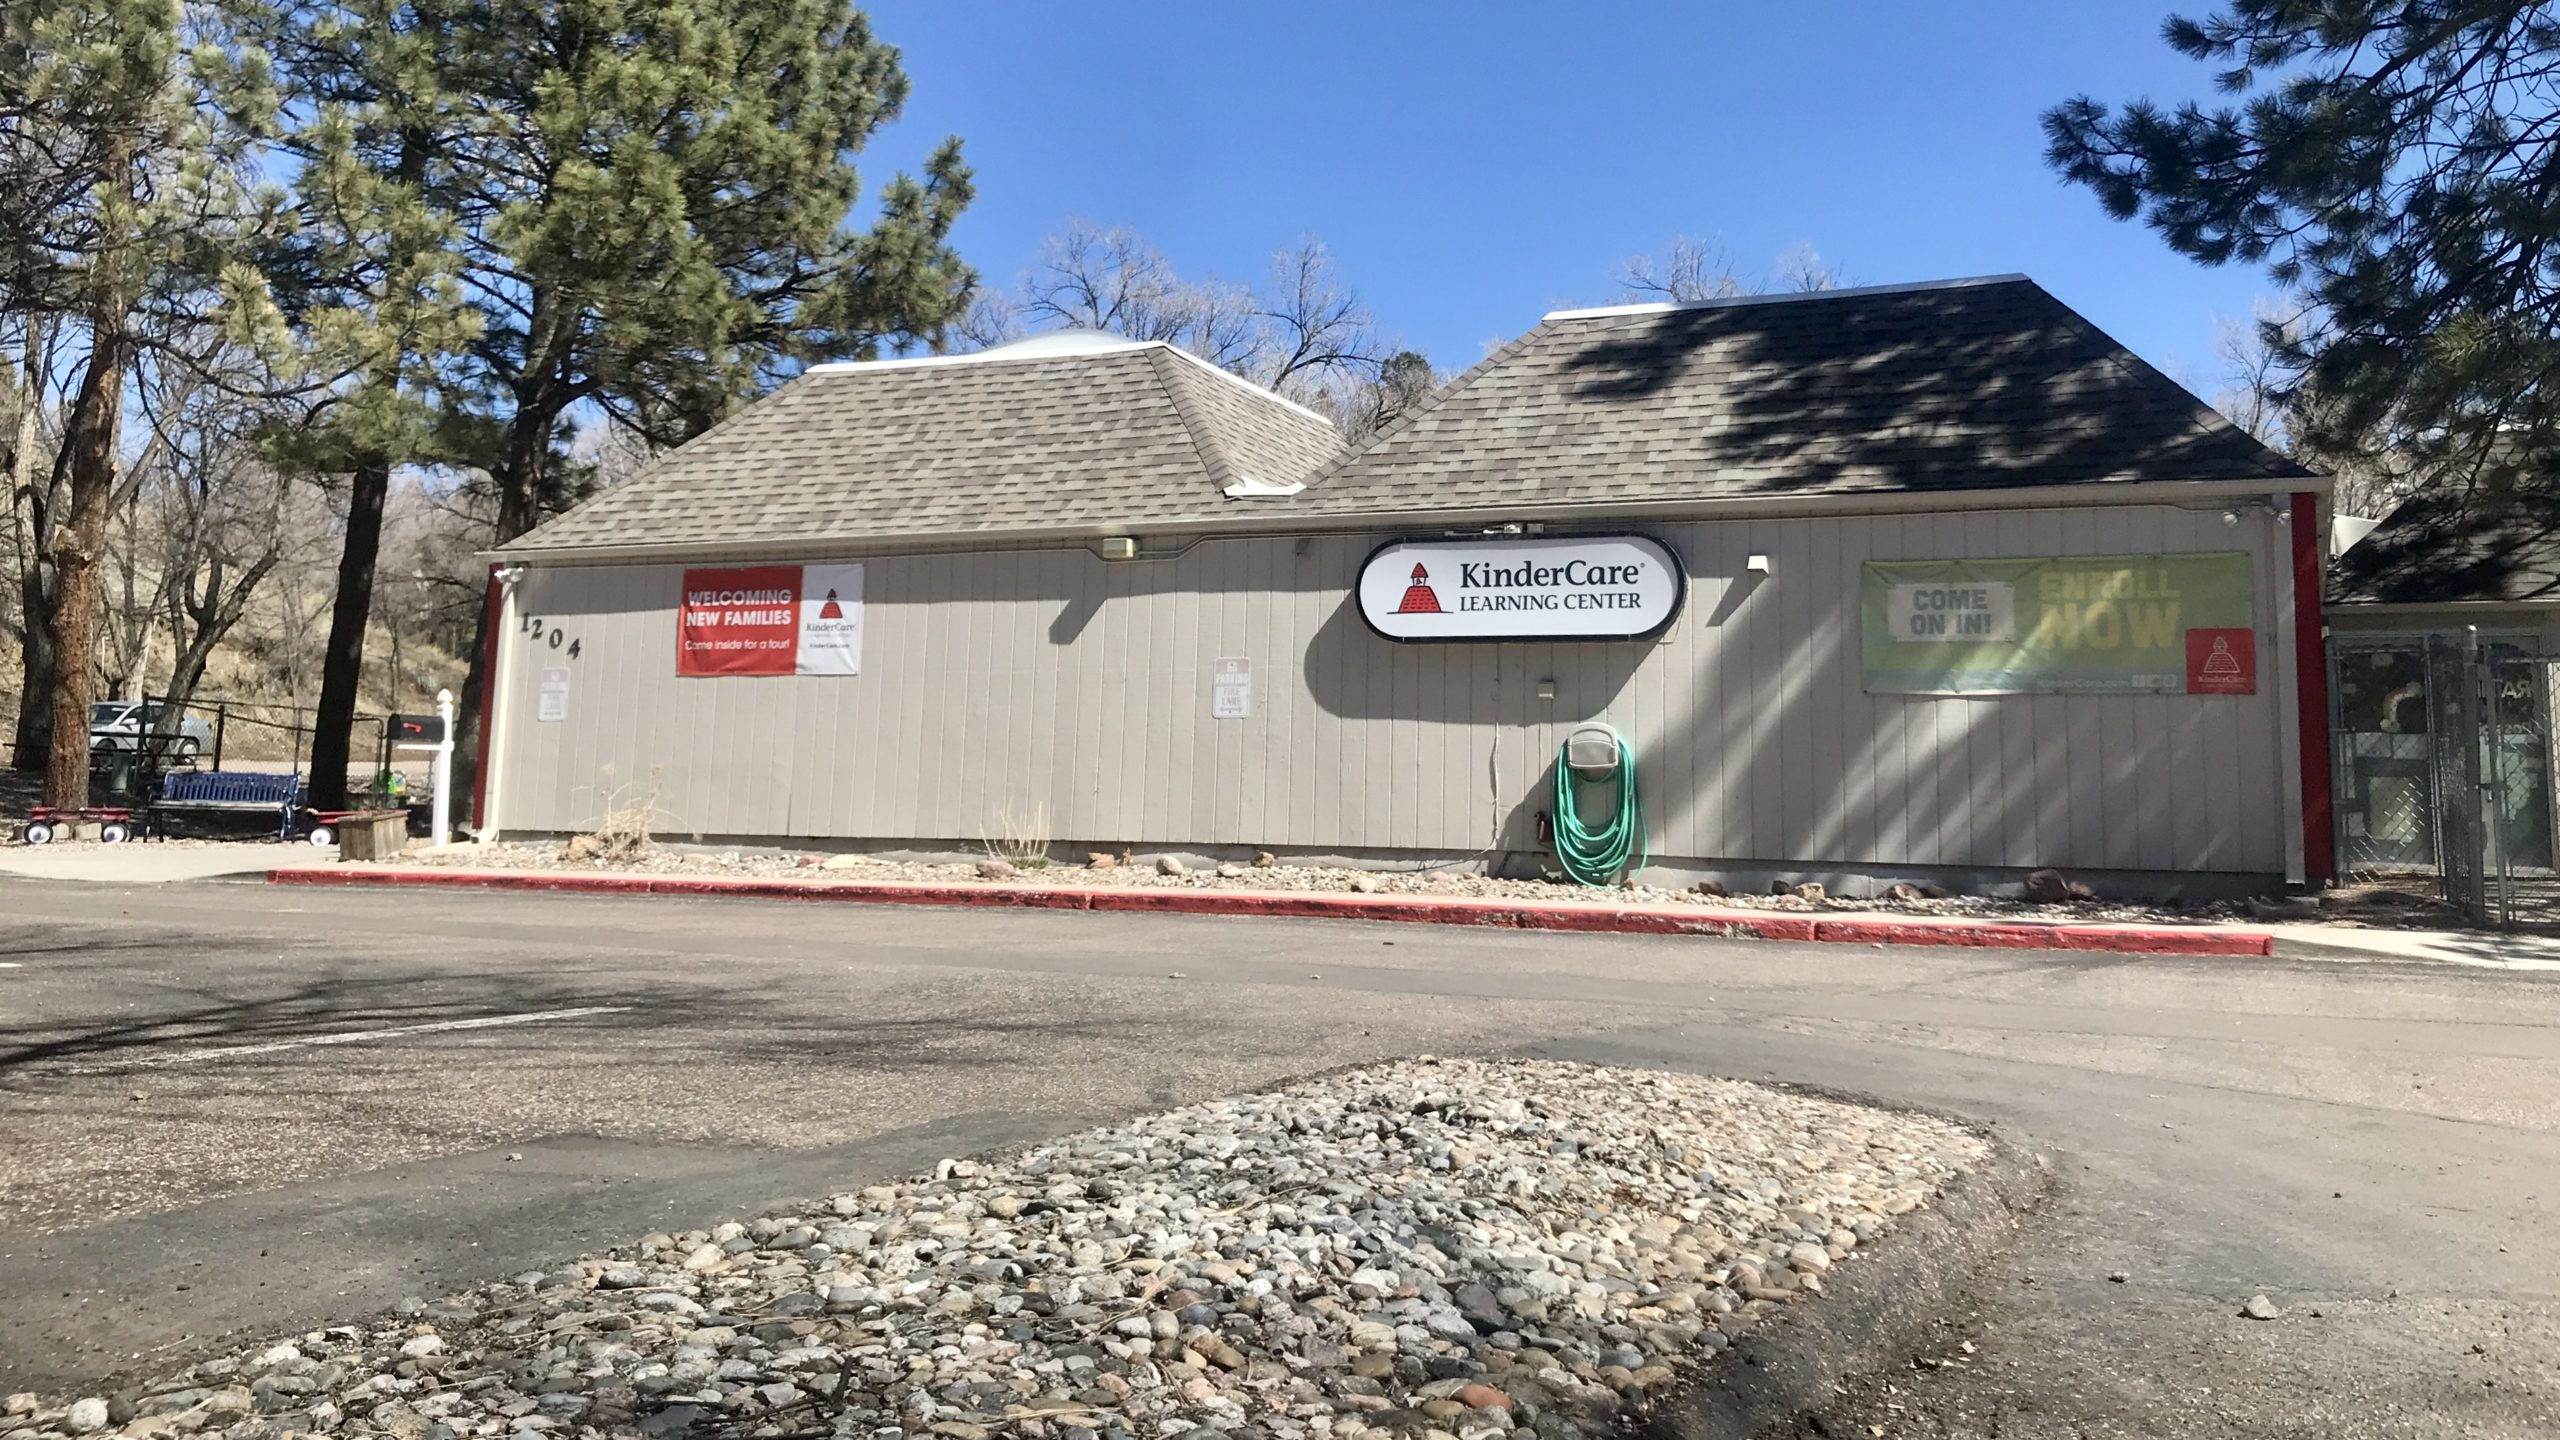 KinderCare on Mesa Road in Colorado Springs, where parents were told one child tested positive for COVID-19 Monday.